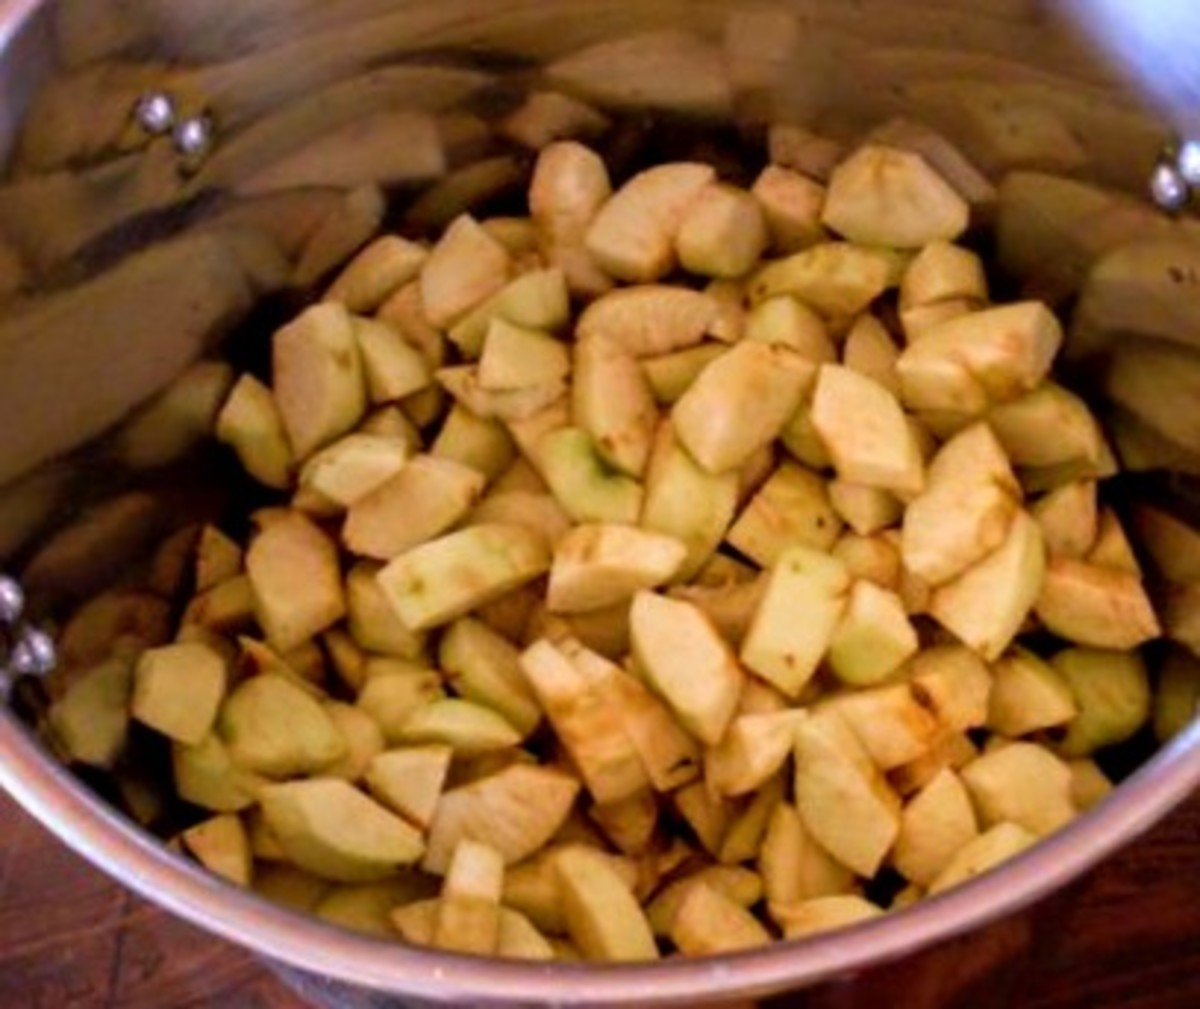 Slice apples into cooking pot. Cut any shape or style you desire, keeping in mind that smaller pieces will fall apart easier during the heat processing to come.